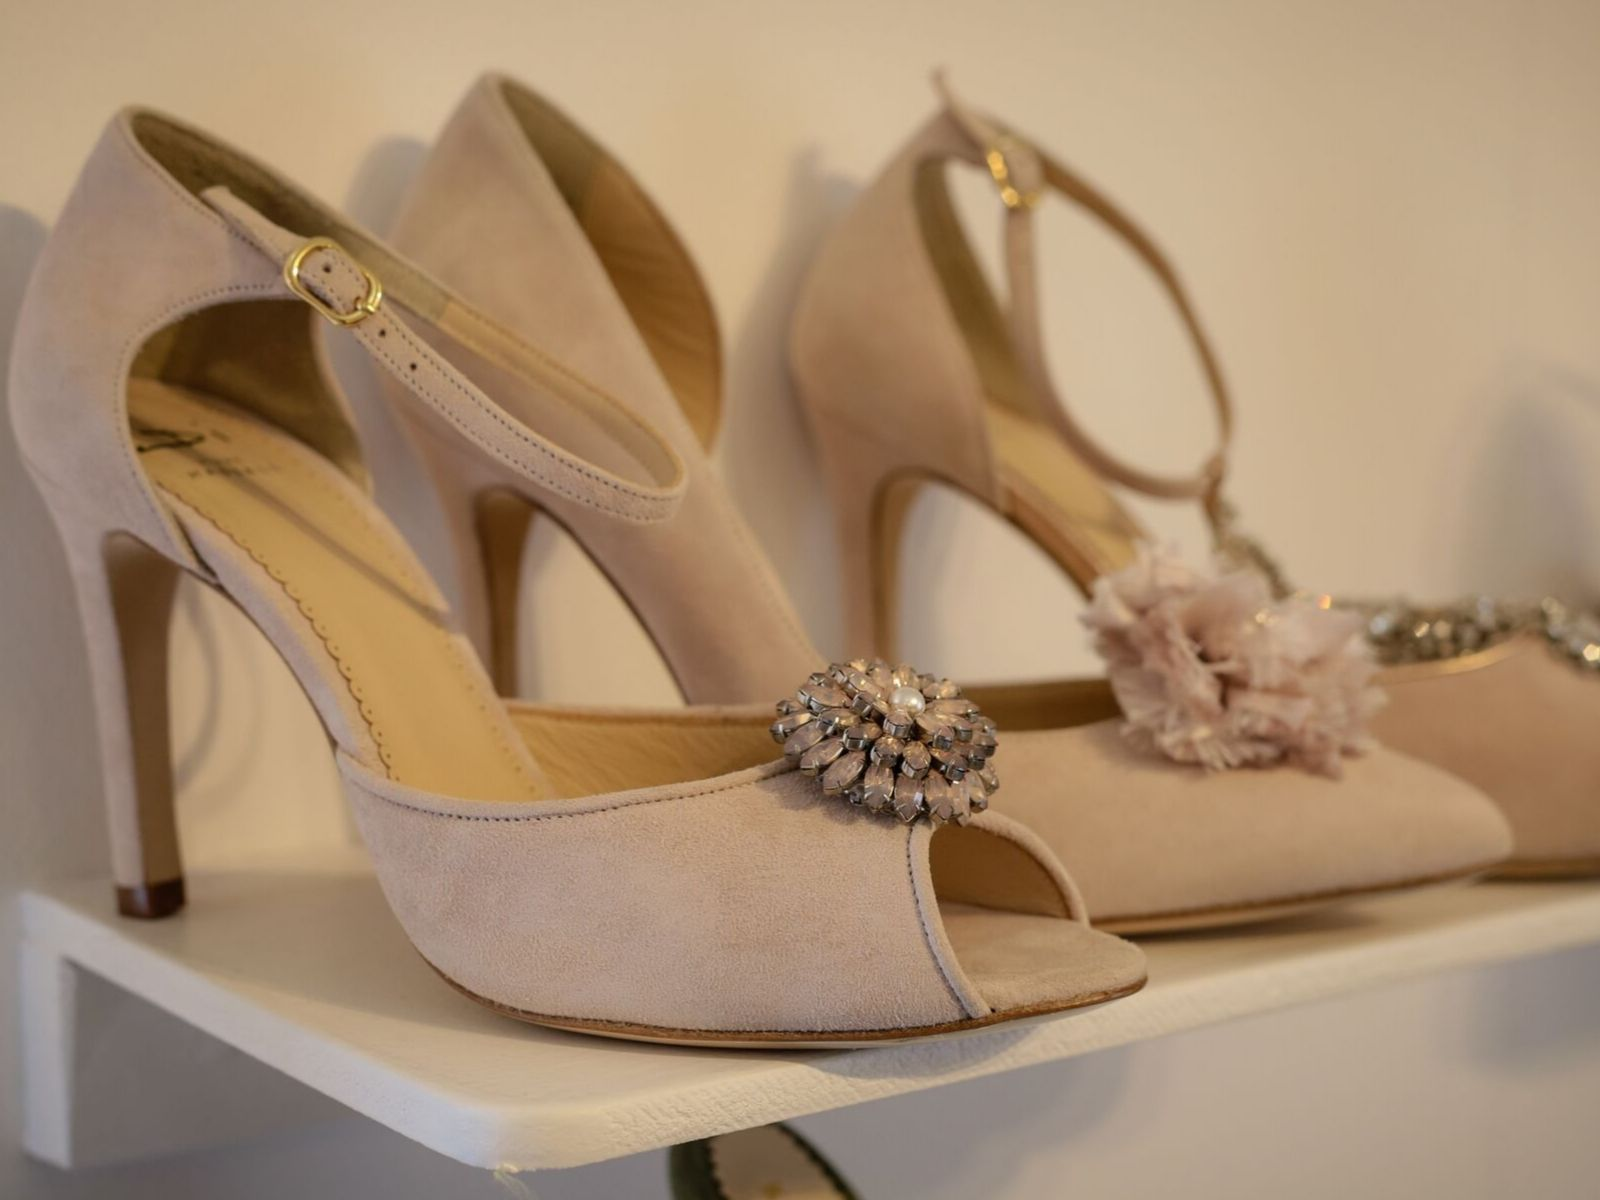 Di Hassall's nude wedding shoes at Boho Bride boutique